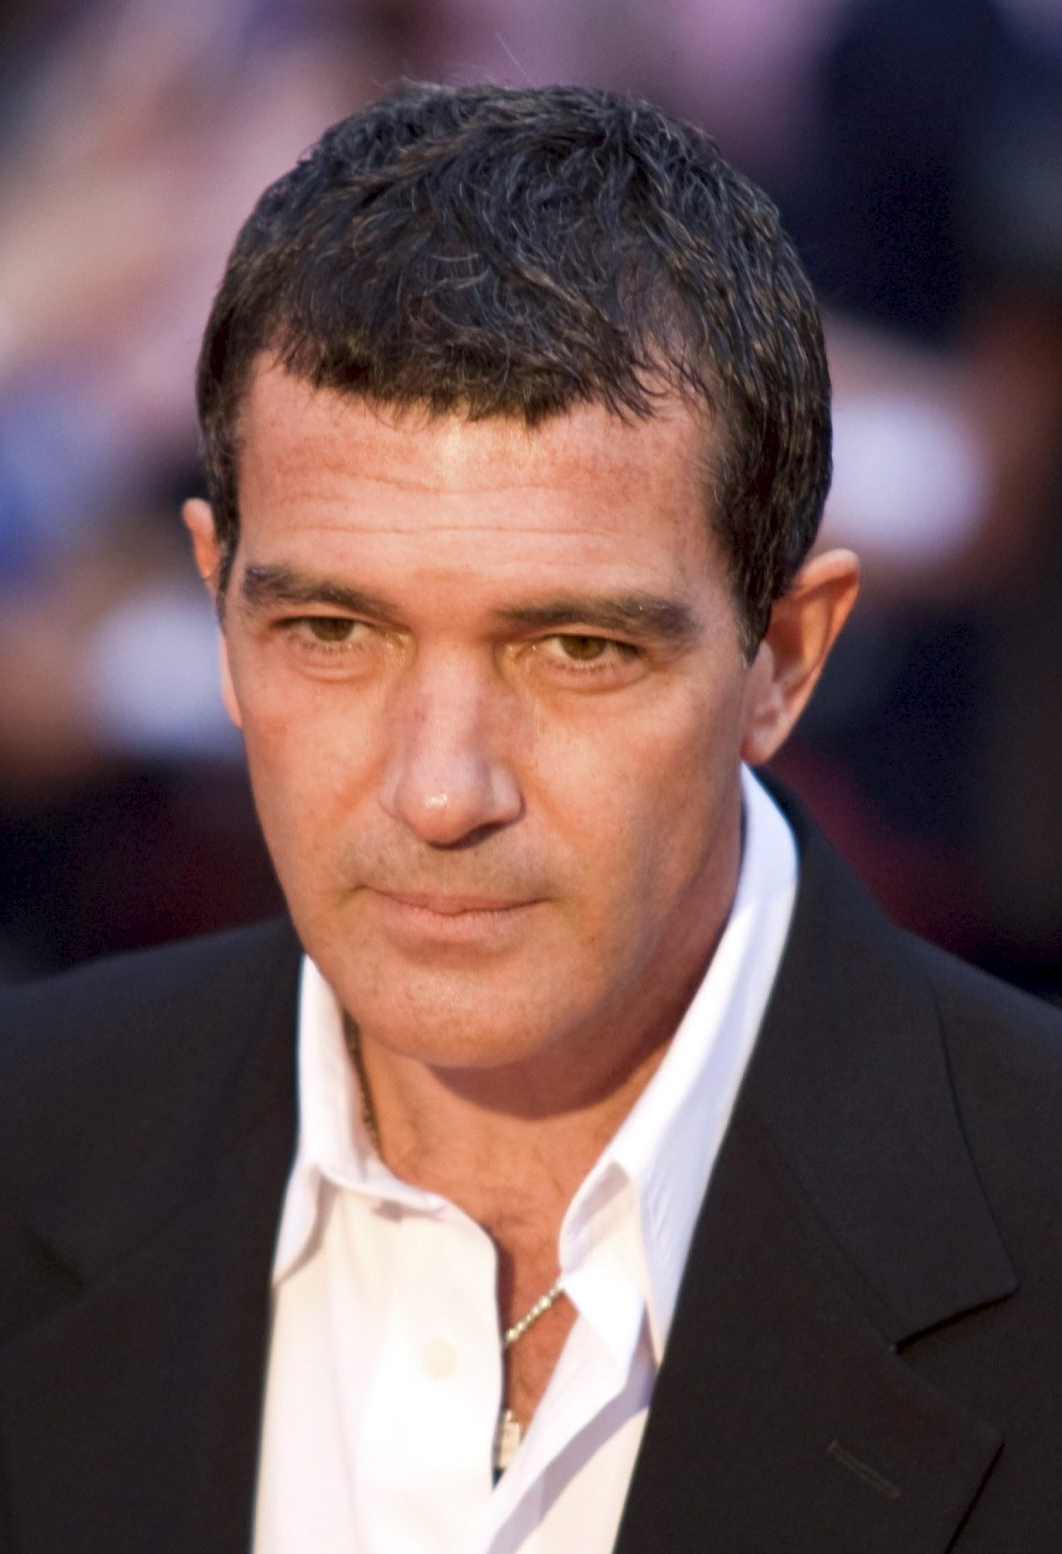 Antonio Banderas Photos Antonio Banderas